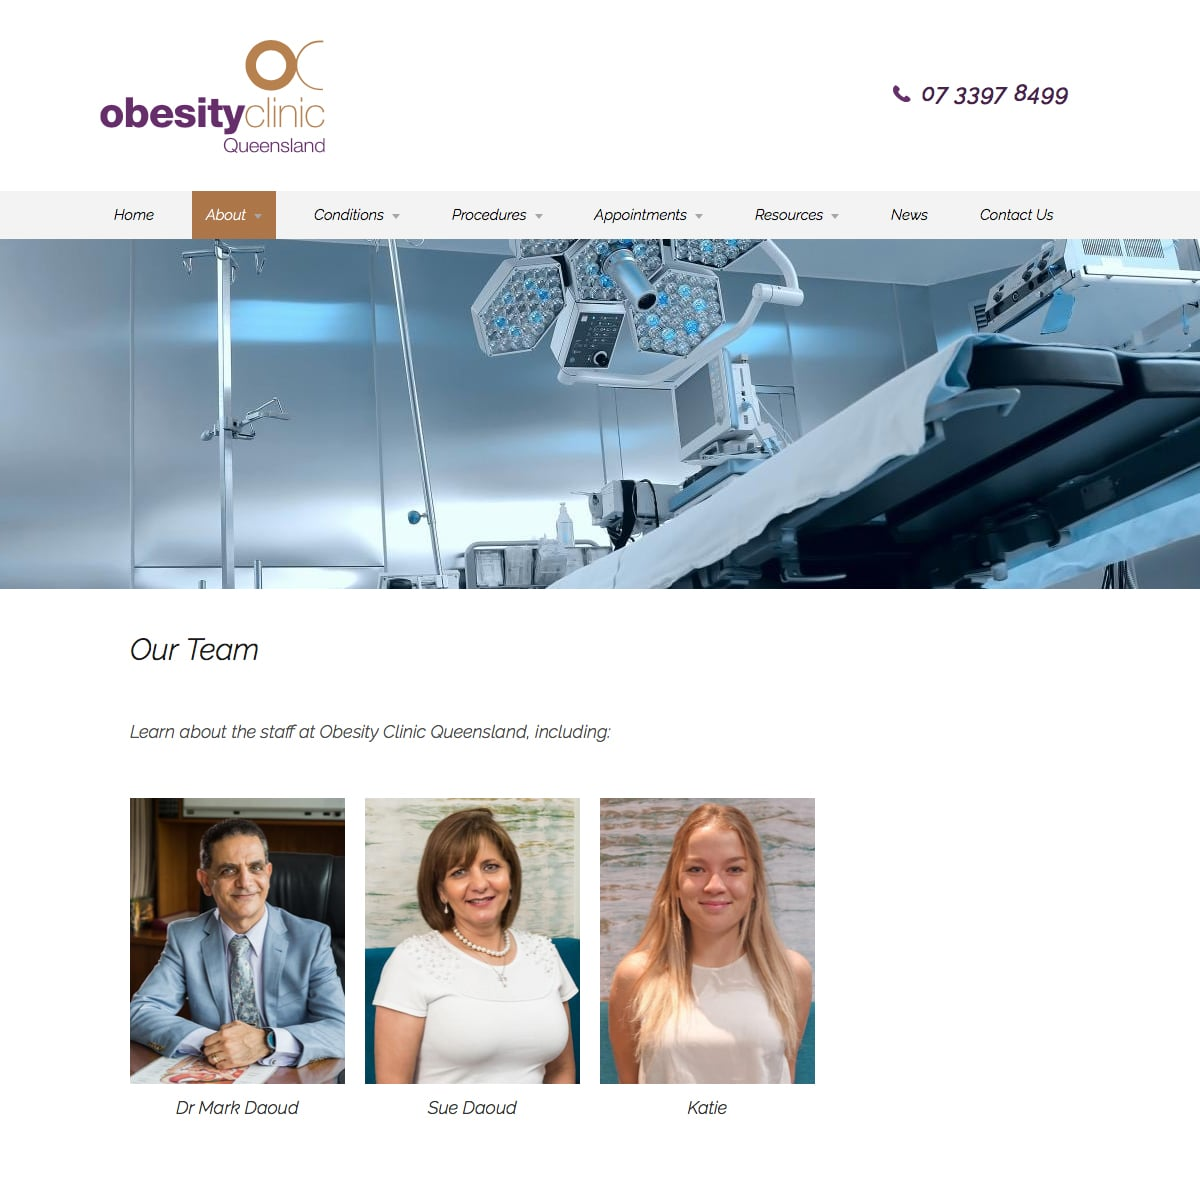 Obesity Clinic Queensland - Our Team